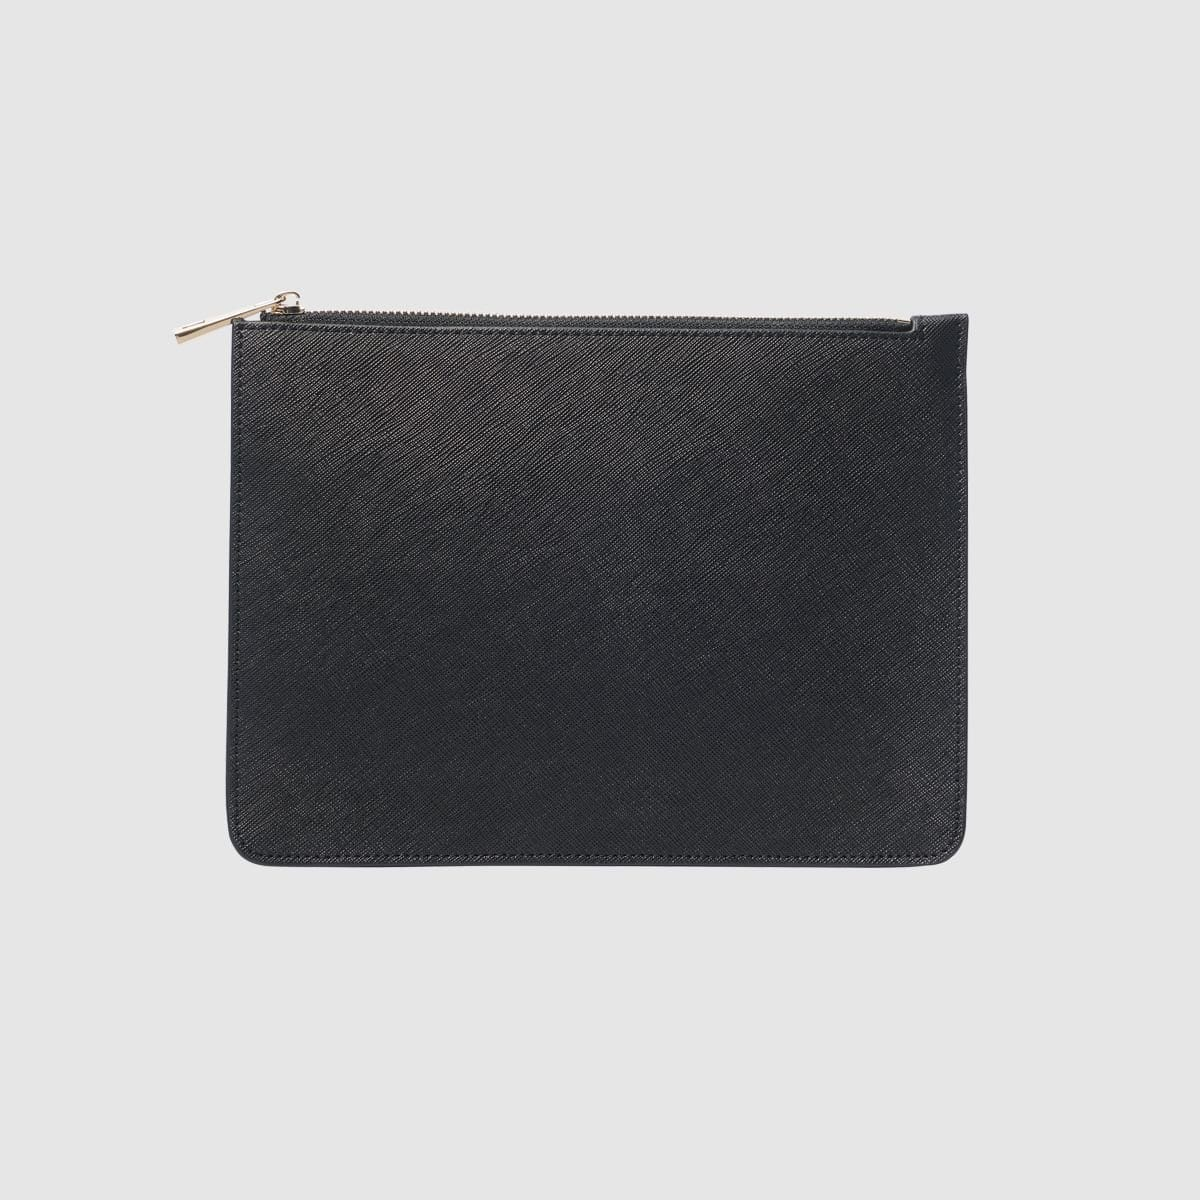 Structured Pouch / Neighborhood Goods